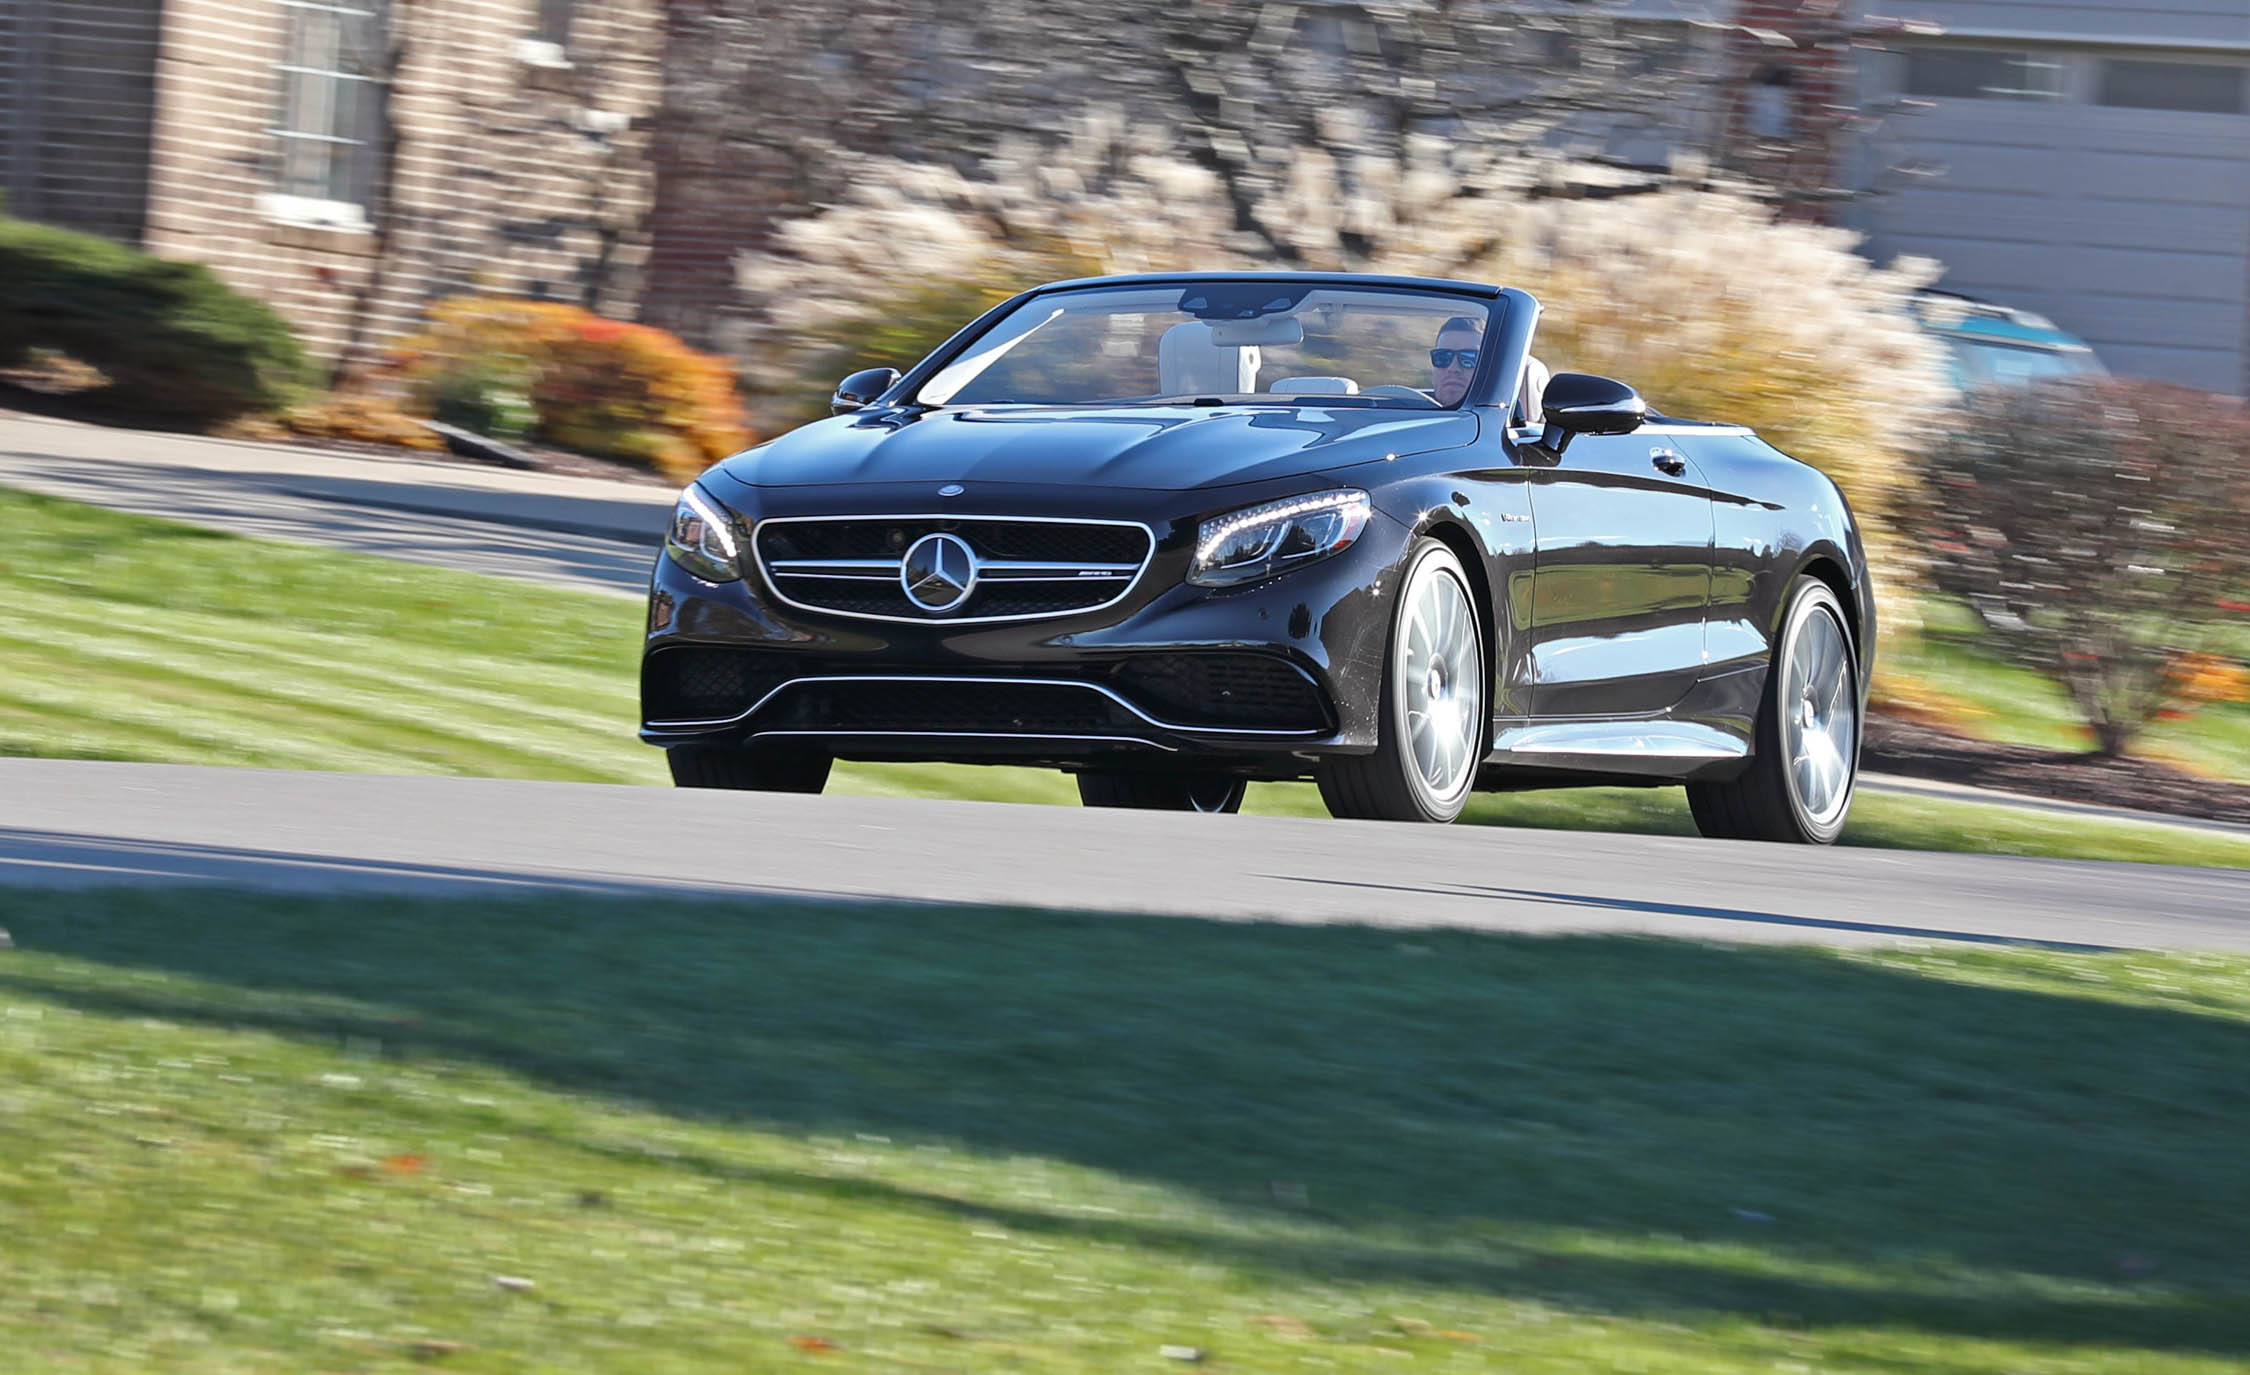 2017 Mercedes Amg S63 Cabriolet Test Drive Front View (Photo 28 of 38)